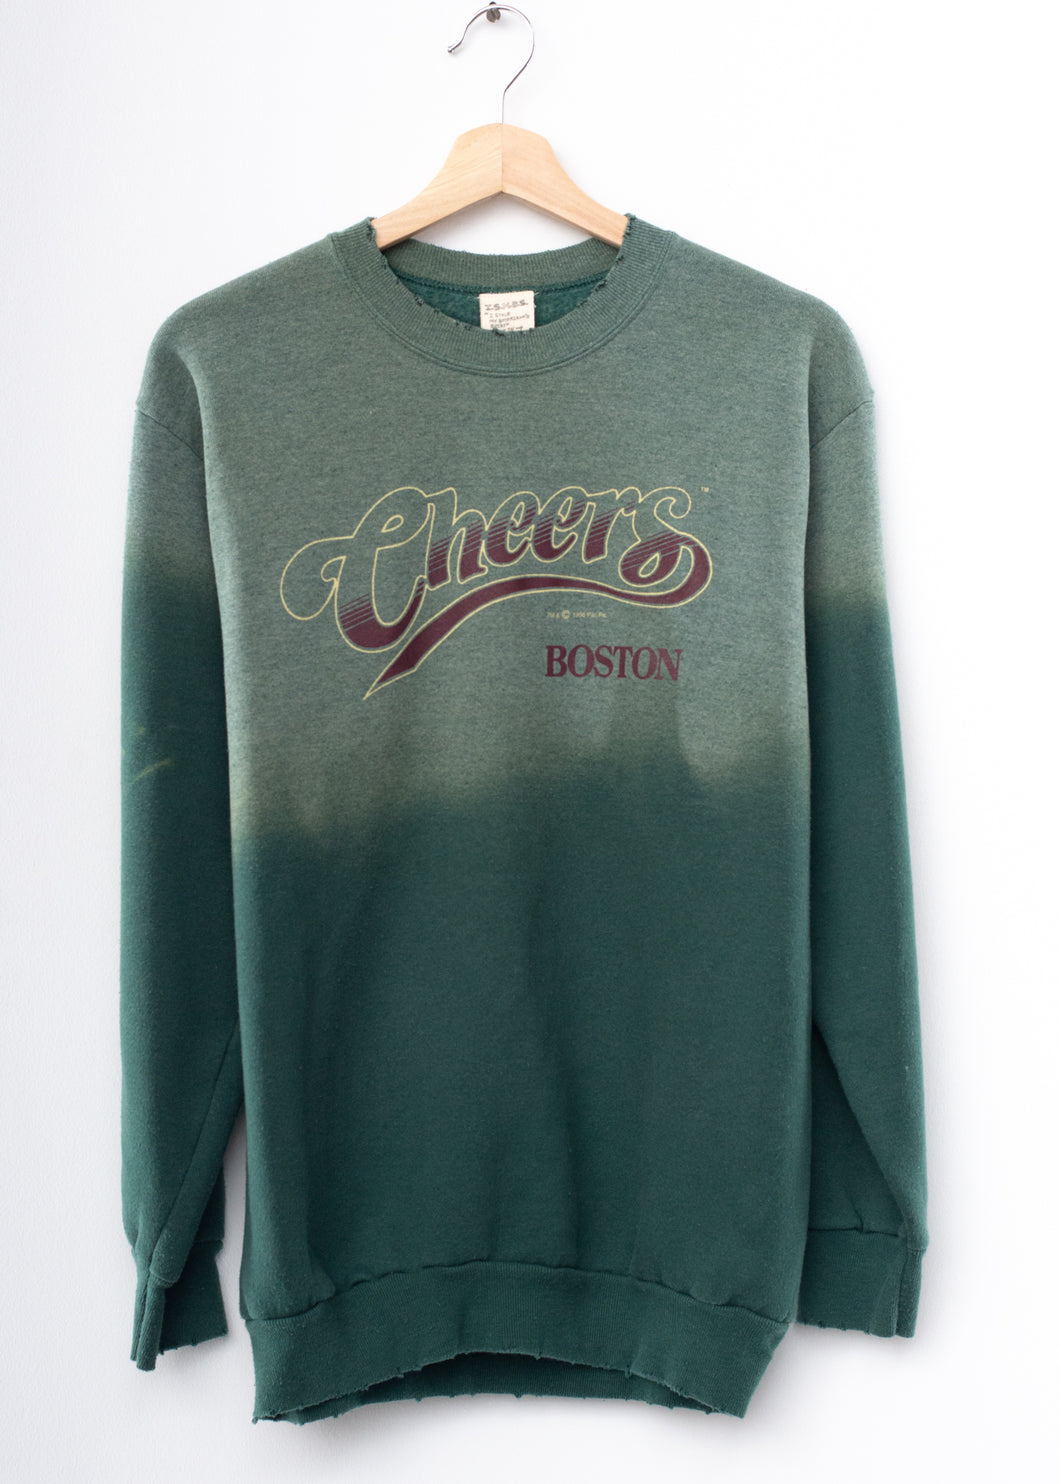 Cheers Sweatshirt